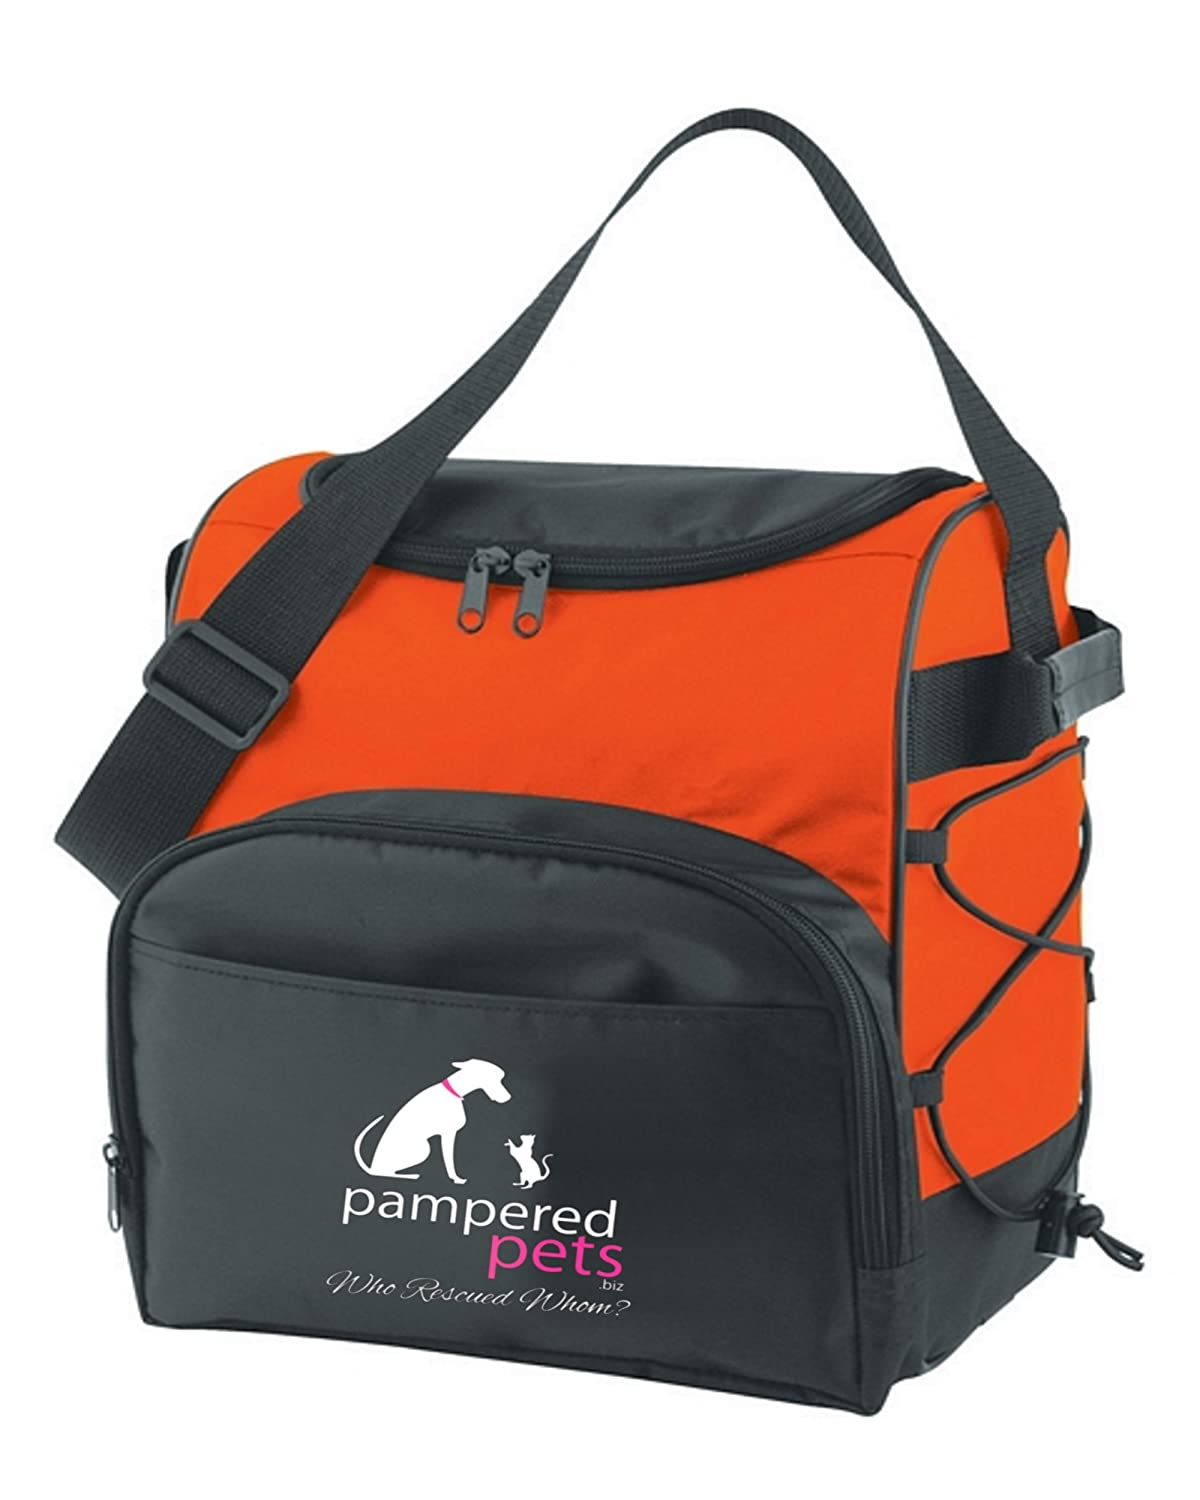 Pampered Pets 12 Can Dual Zippered Travel Cooler Who Rescued Whom orange